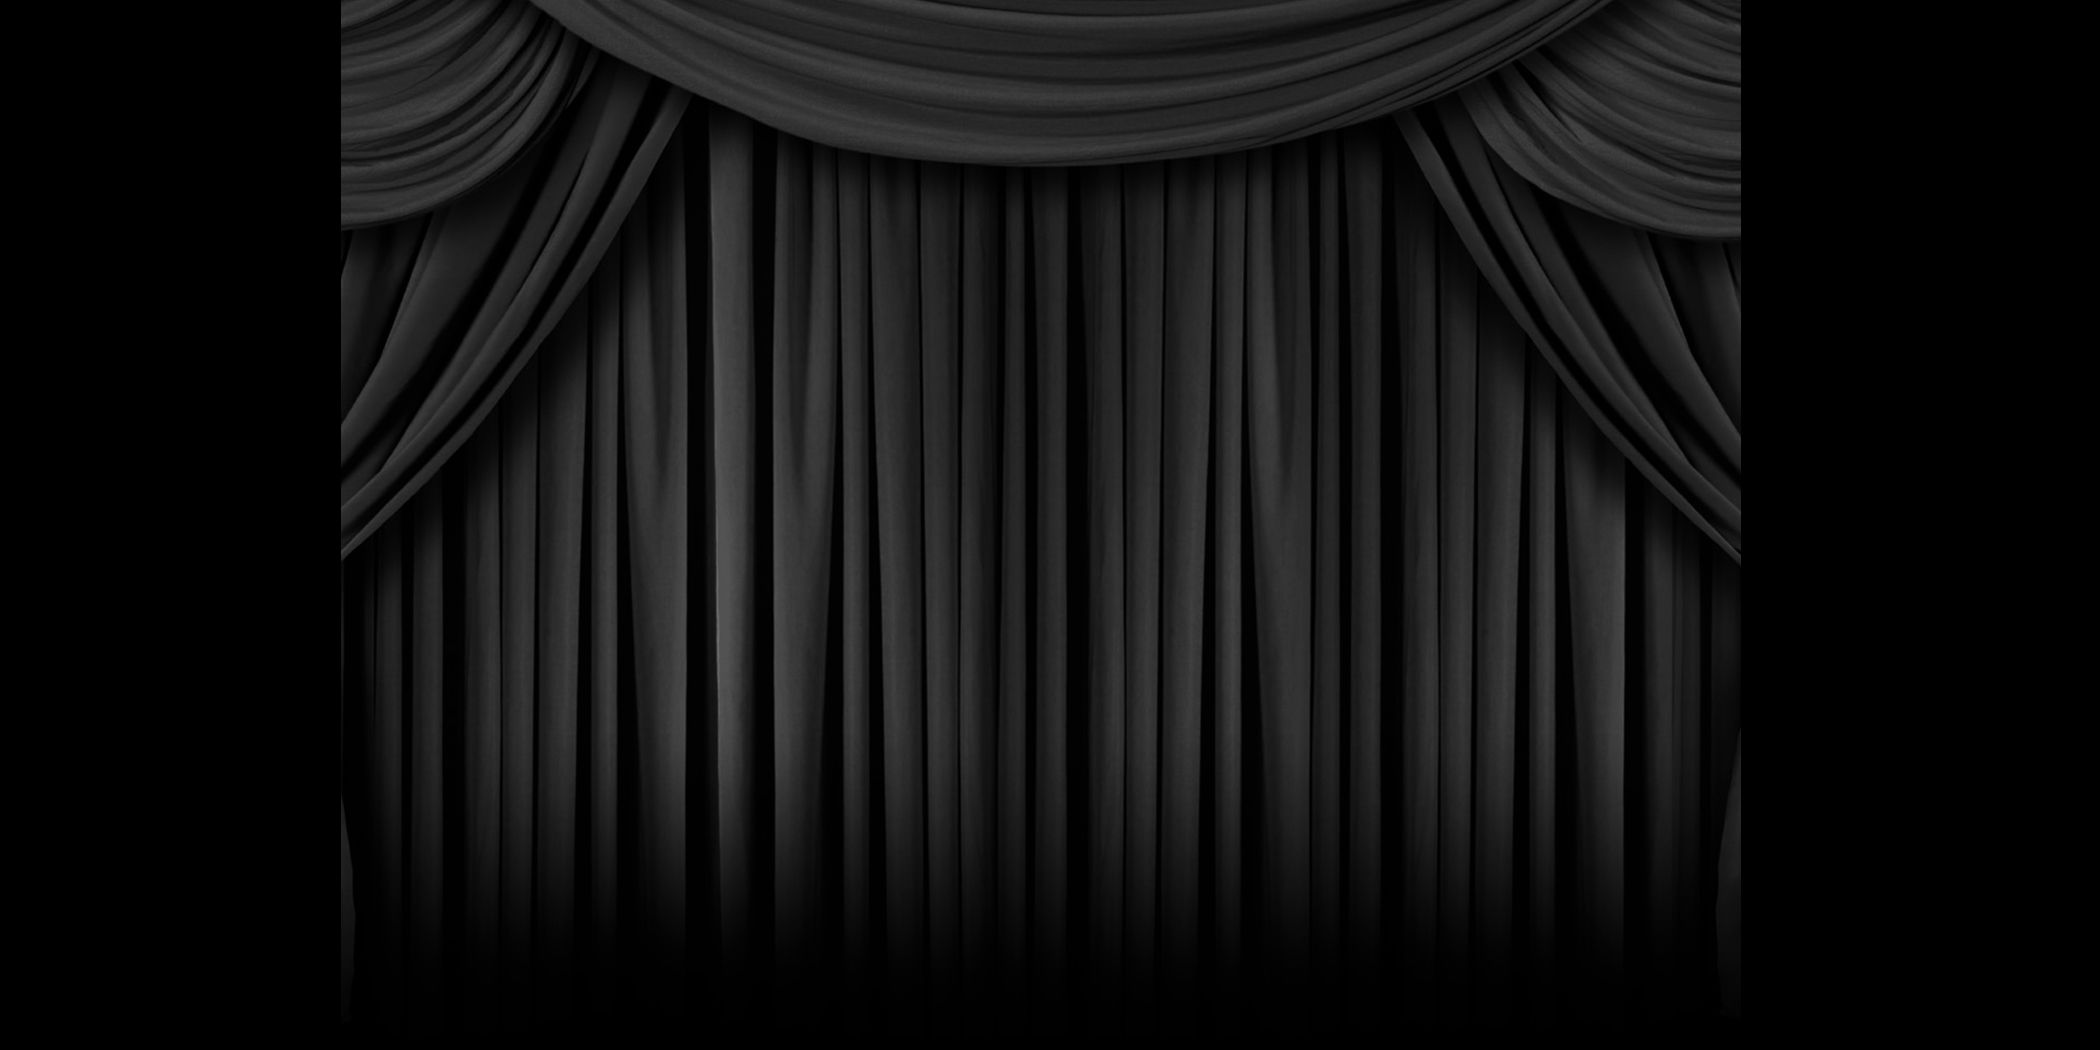 Theatre Curtains Black And White